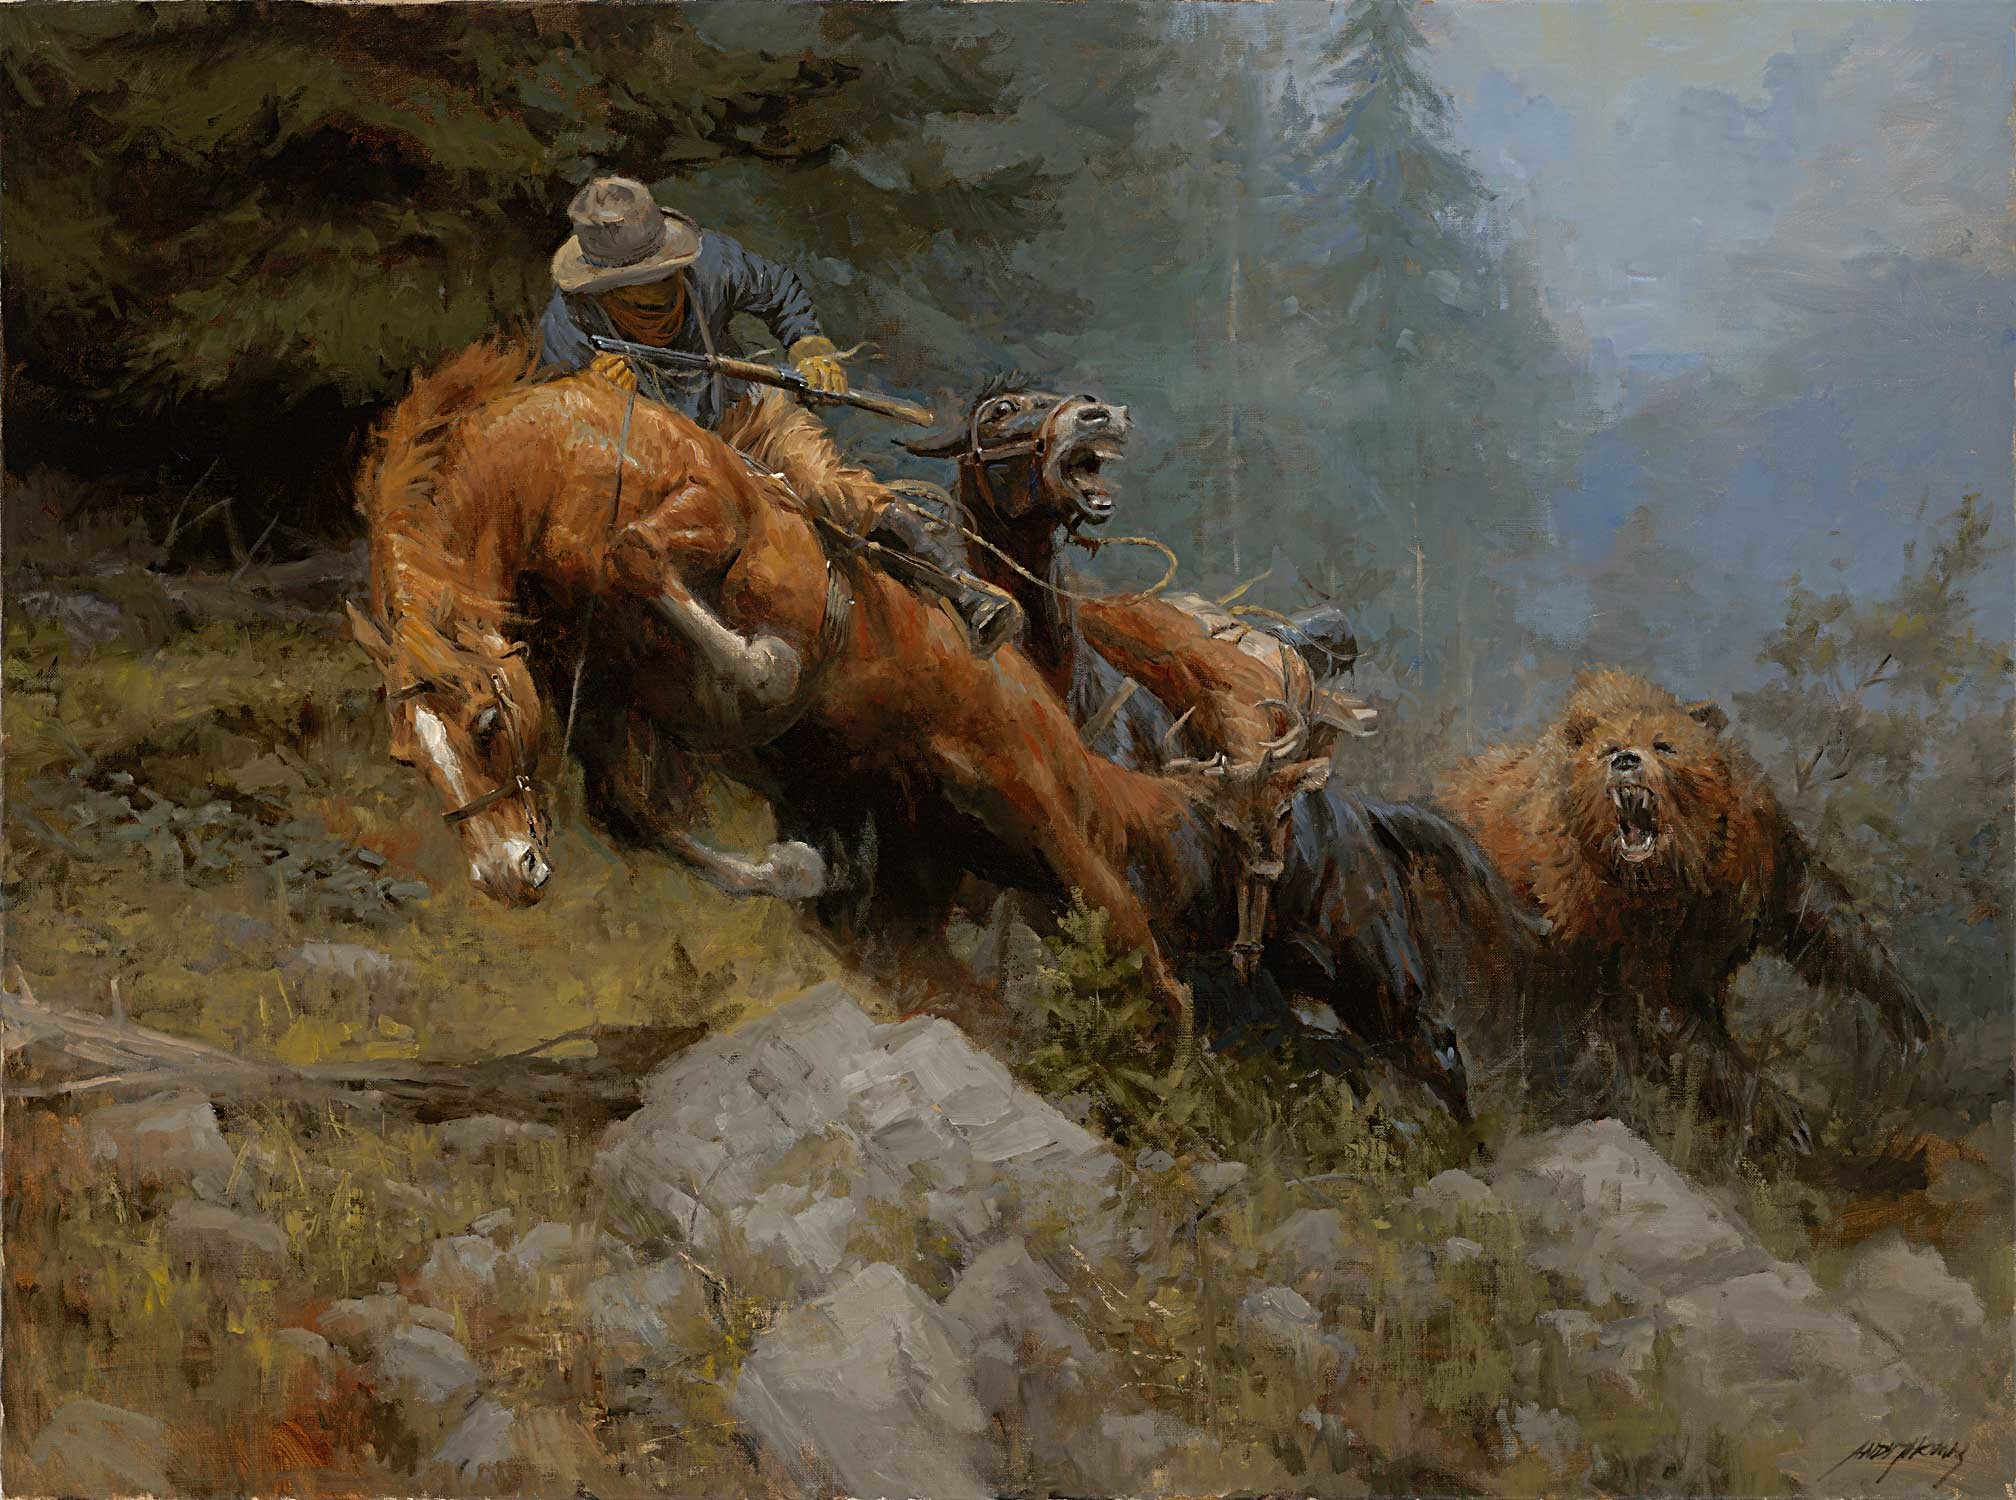 2016x1500 For anyone who played Red Dead Redemption this painting/wallpaper reminds  me of the northern